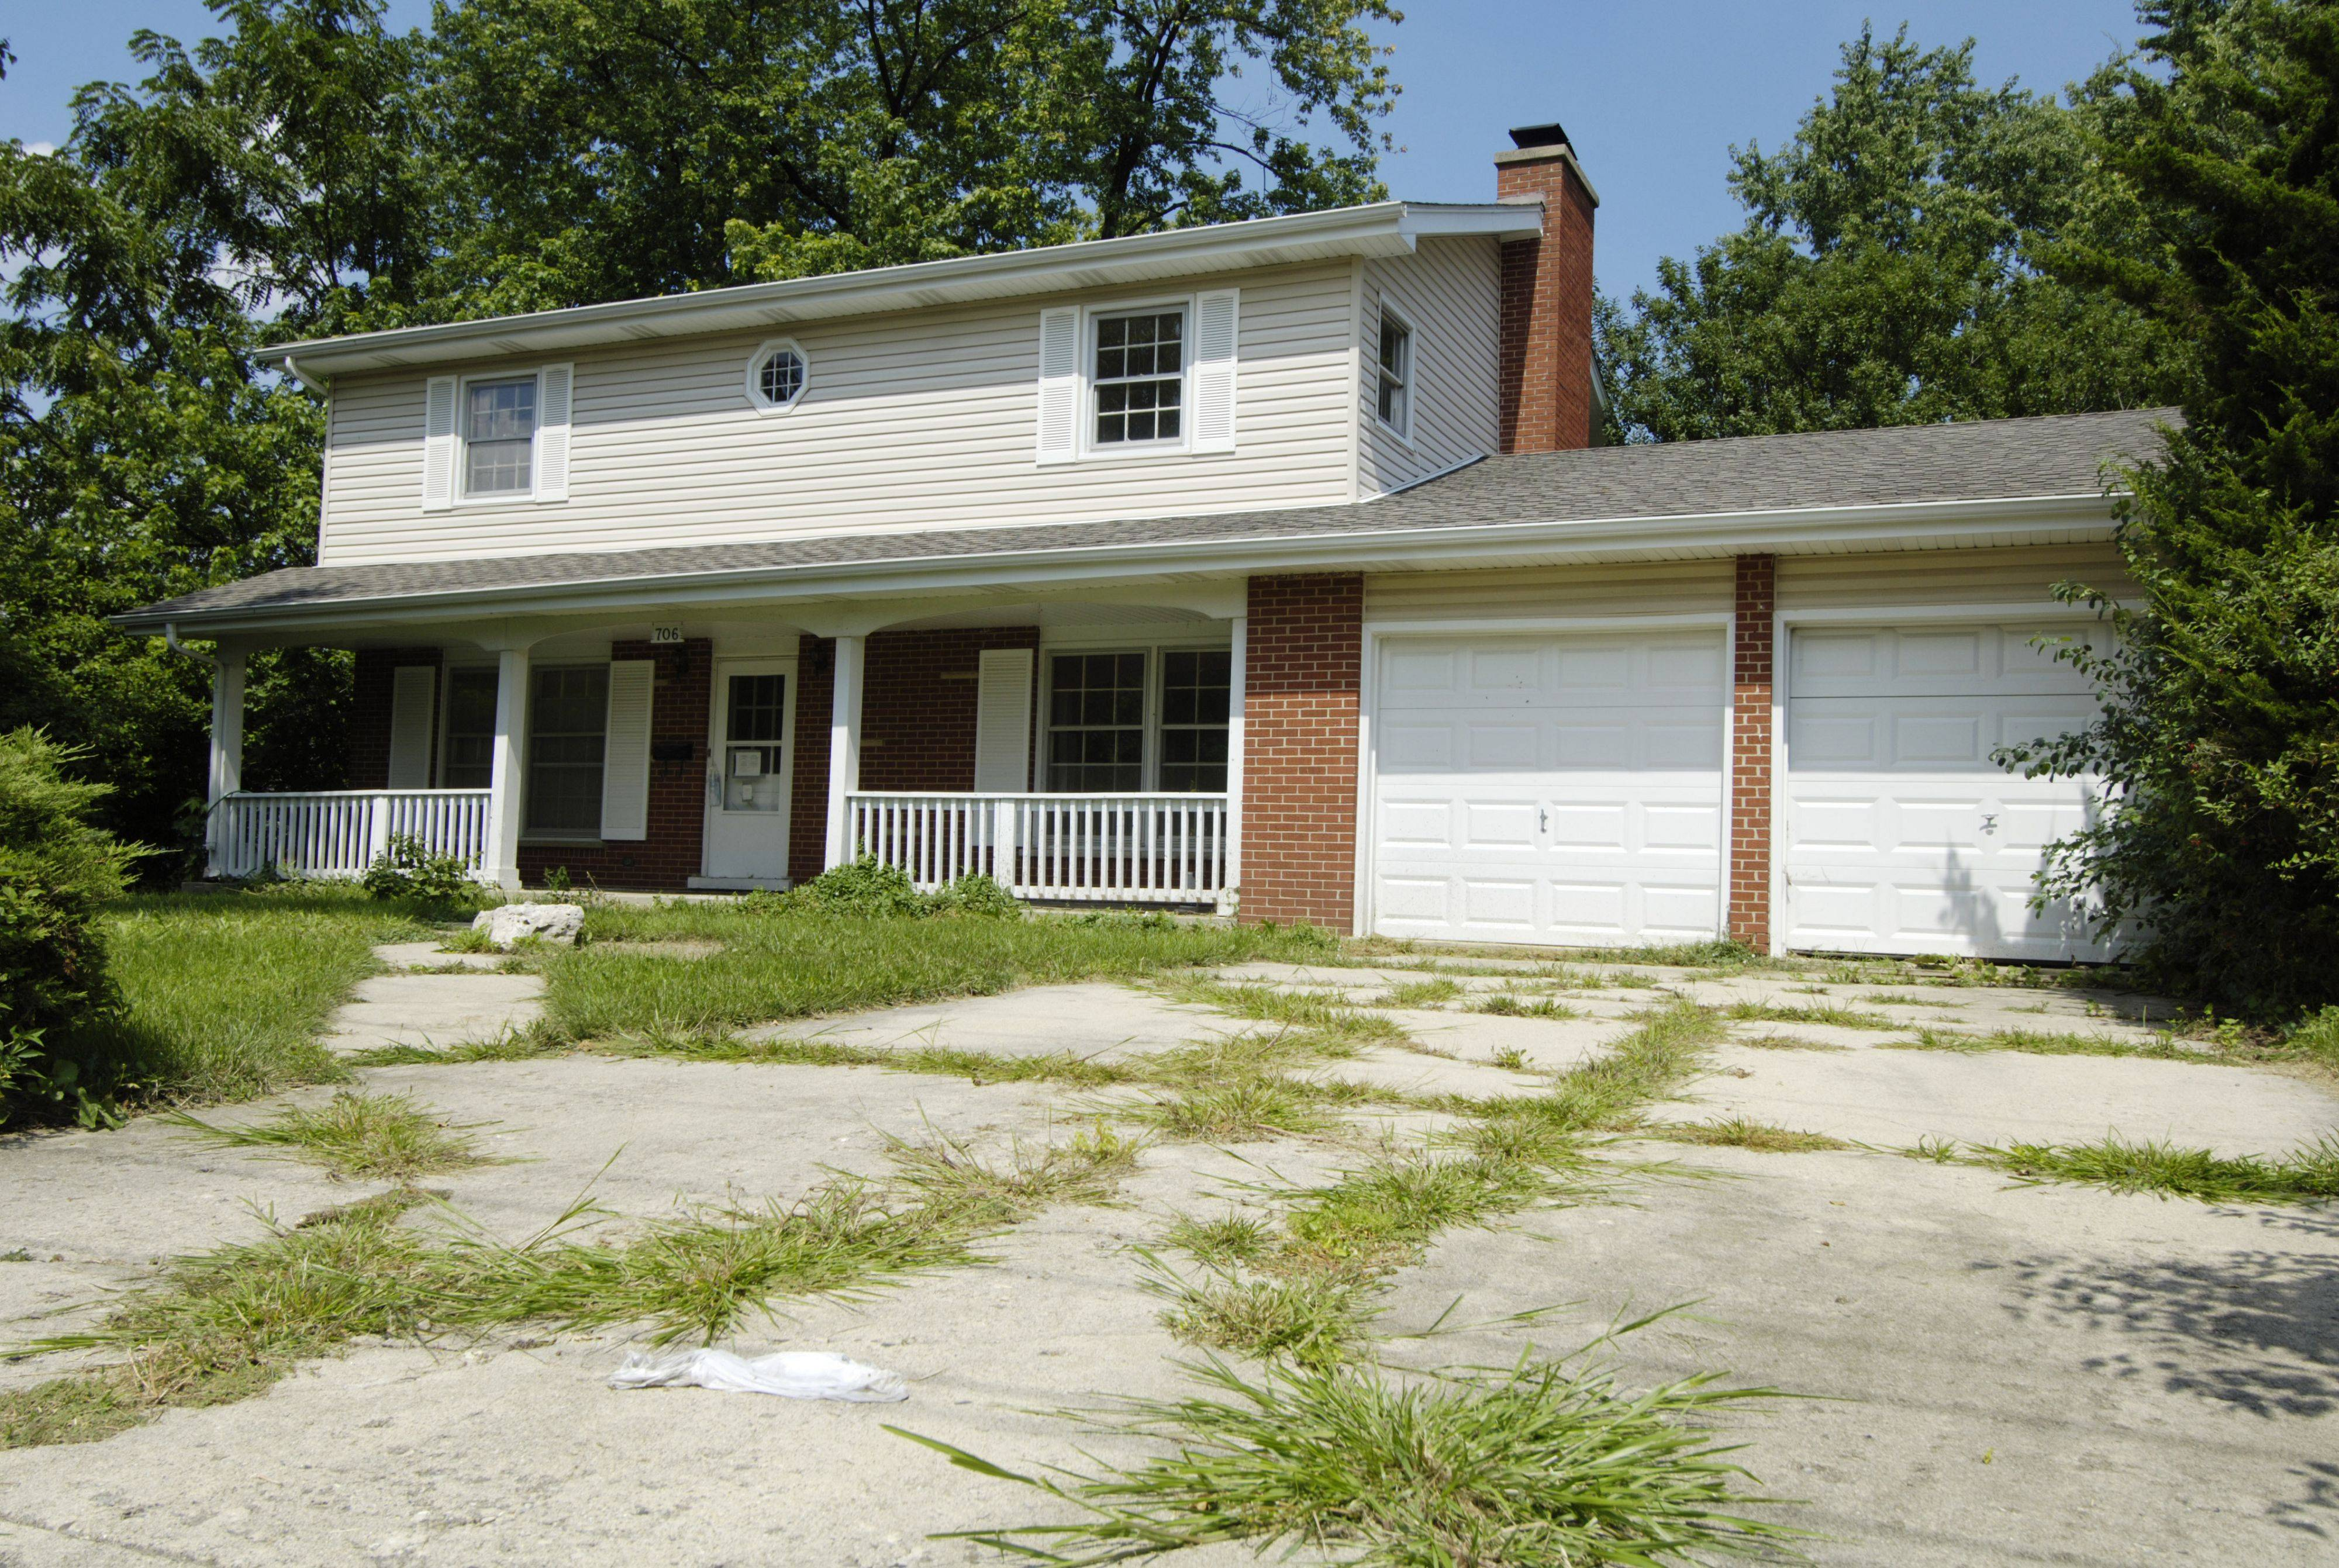 This vacant house on East Baldwin Road still shows the signs of neglect that can come with unoccupied properties.